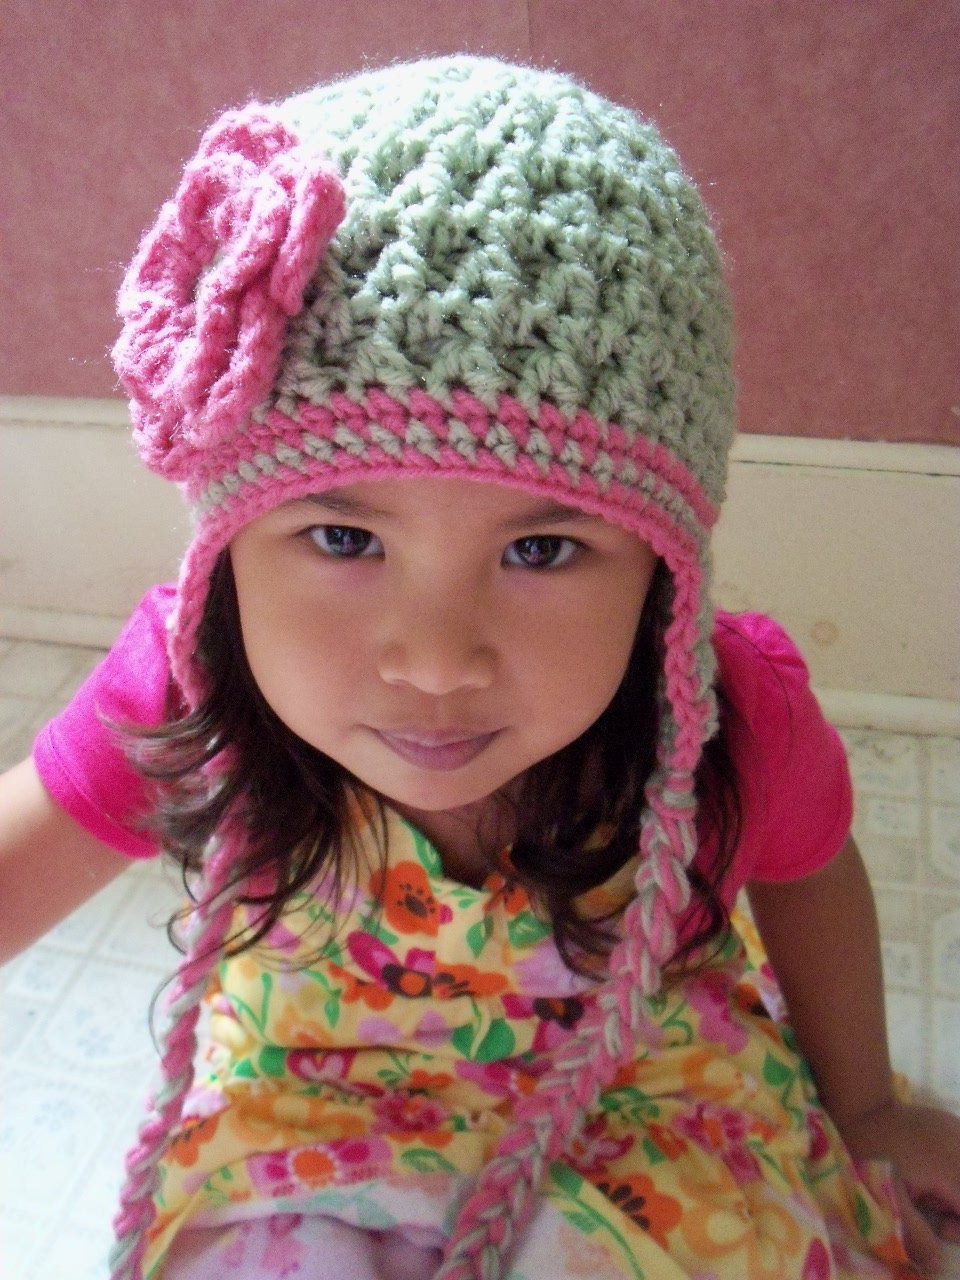 Best Of Crochet Pattern Central Children S Hats Dancox for Crochet Hat for Girl Of Amazing 41 Pictures Crochet Hat for Girl